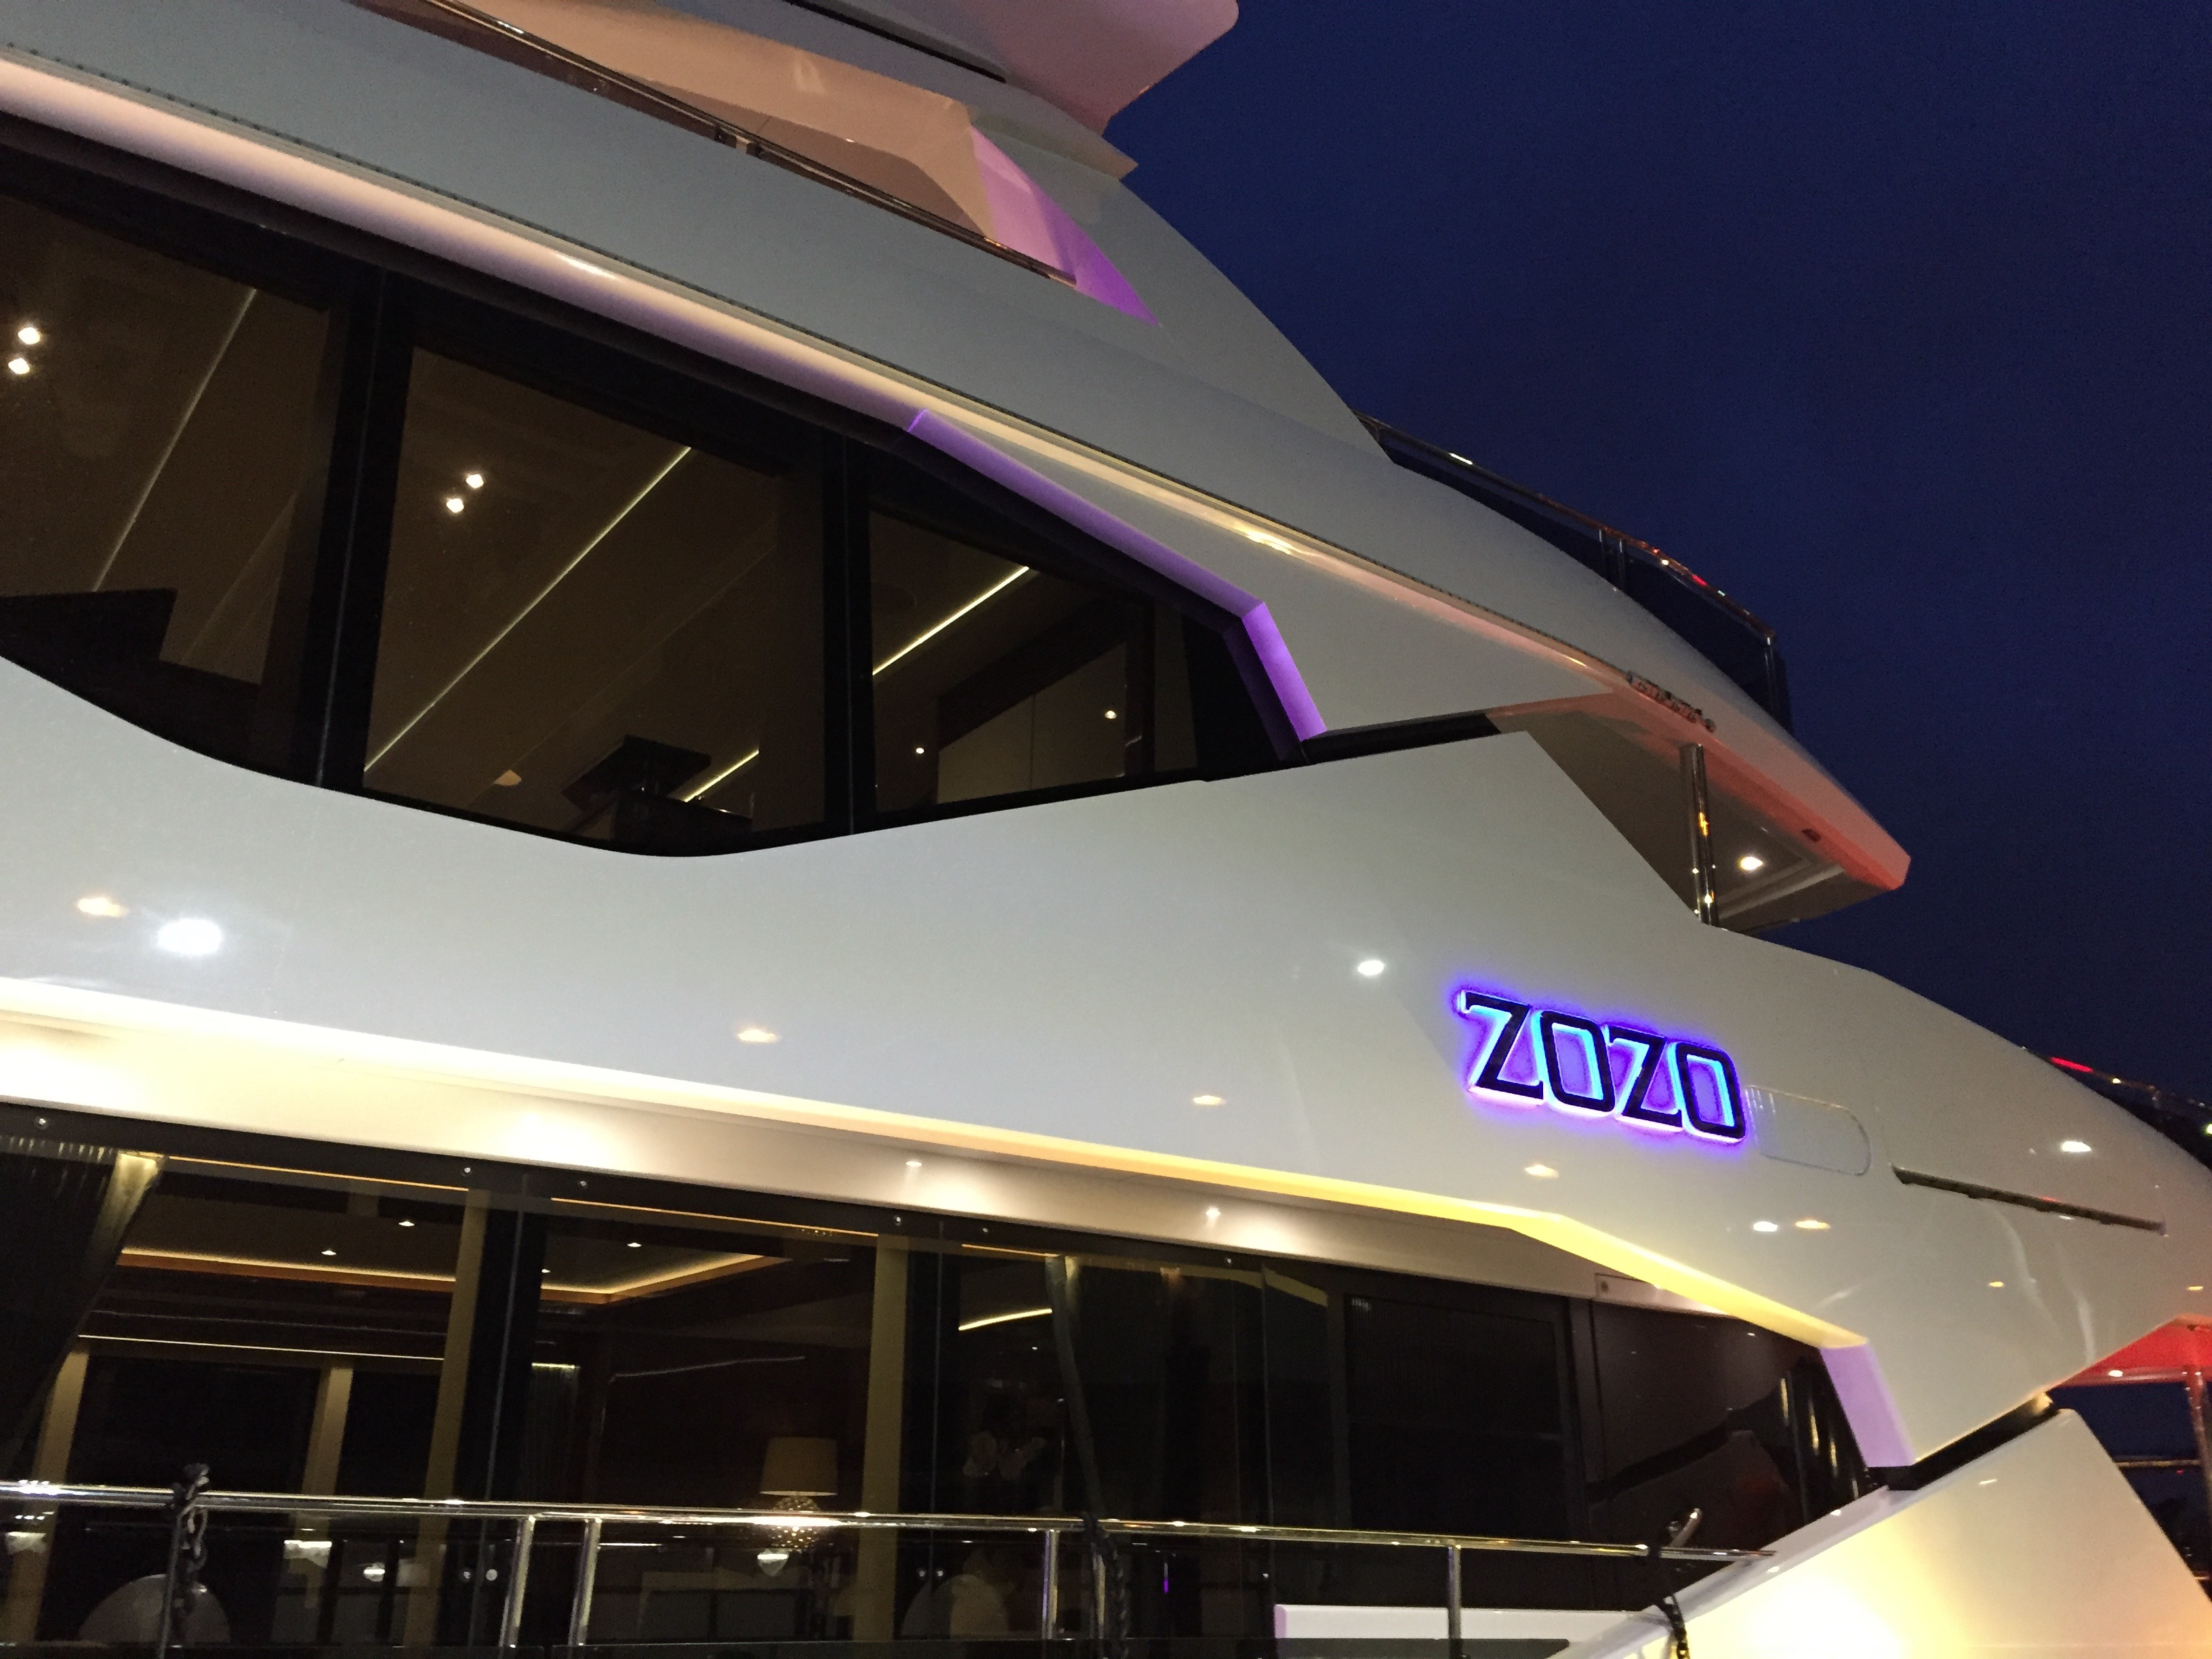 I Go Aboard The Fabulous Sunseeker SuperYacht – ZOZO!